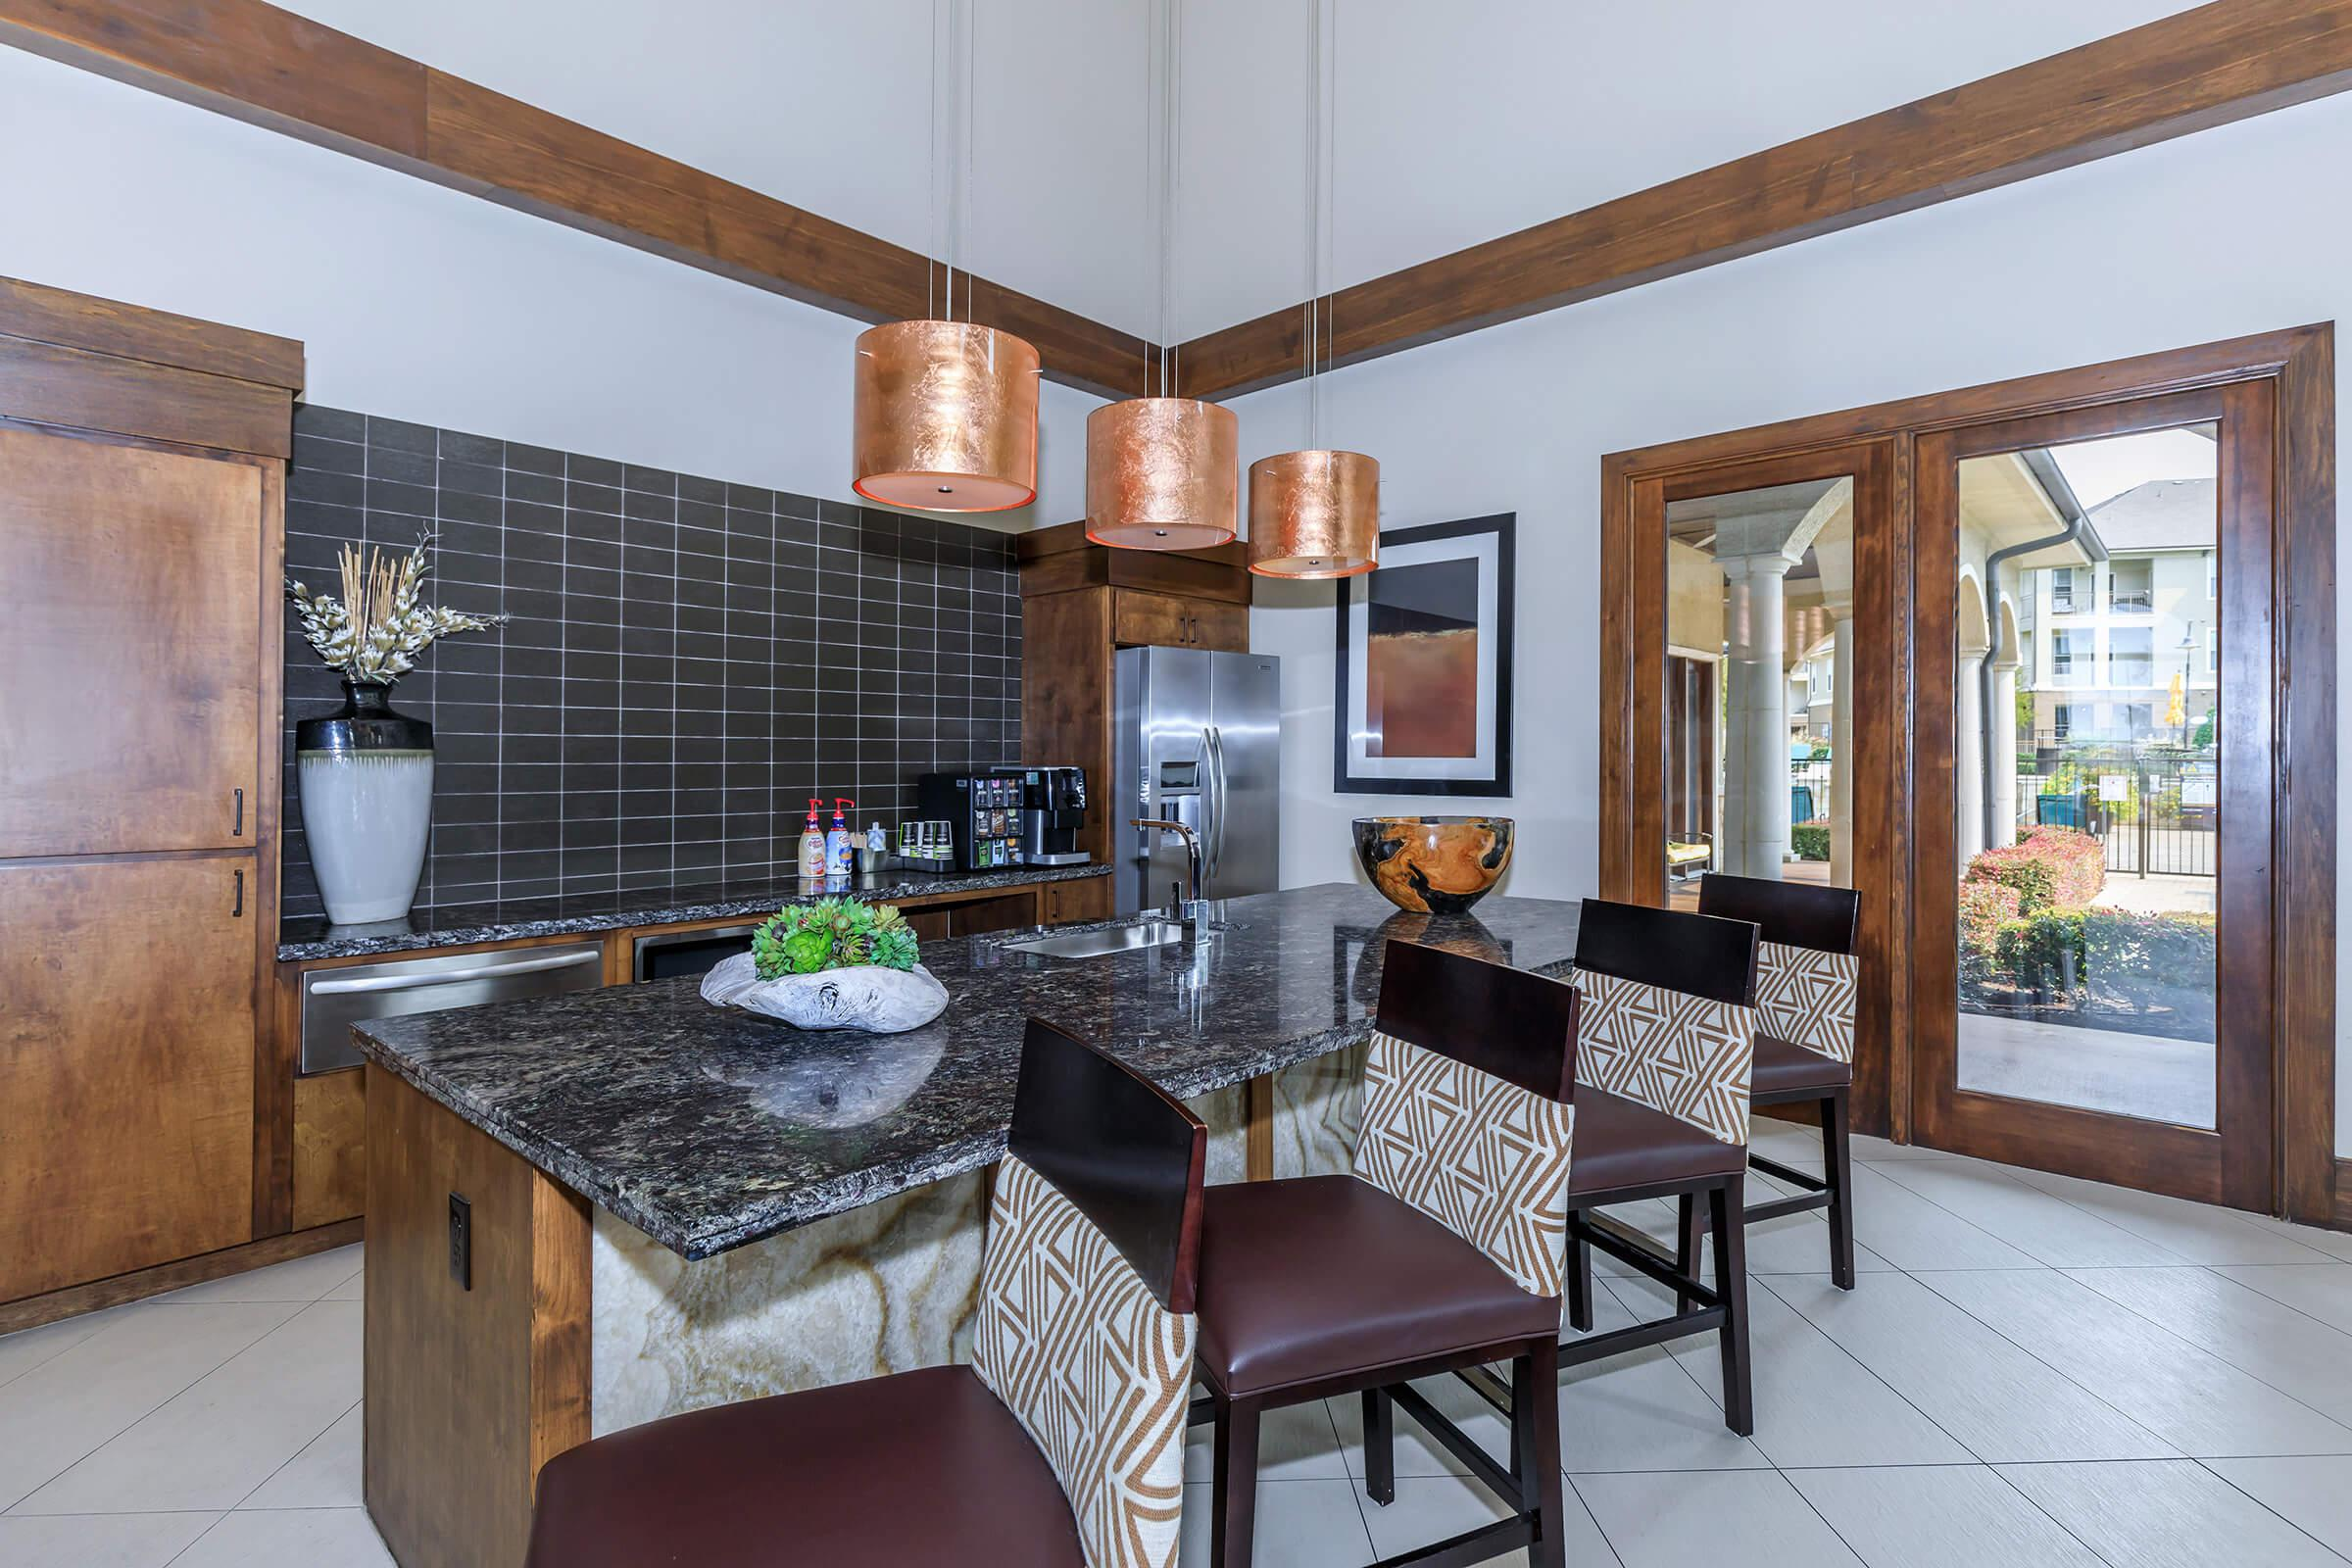 a kitchen with a dining table